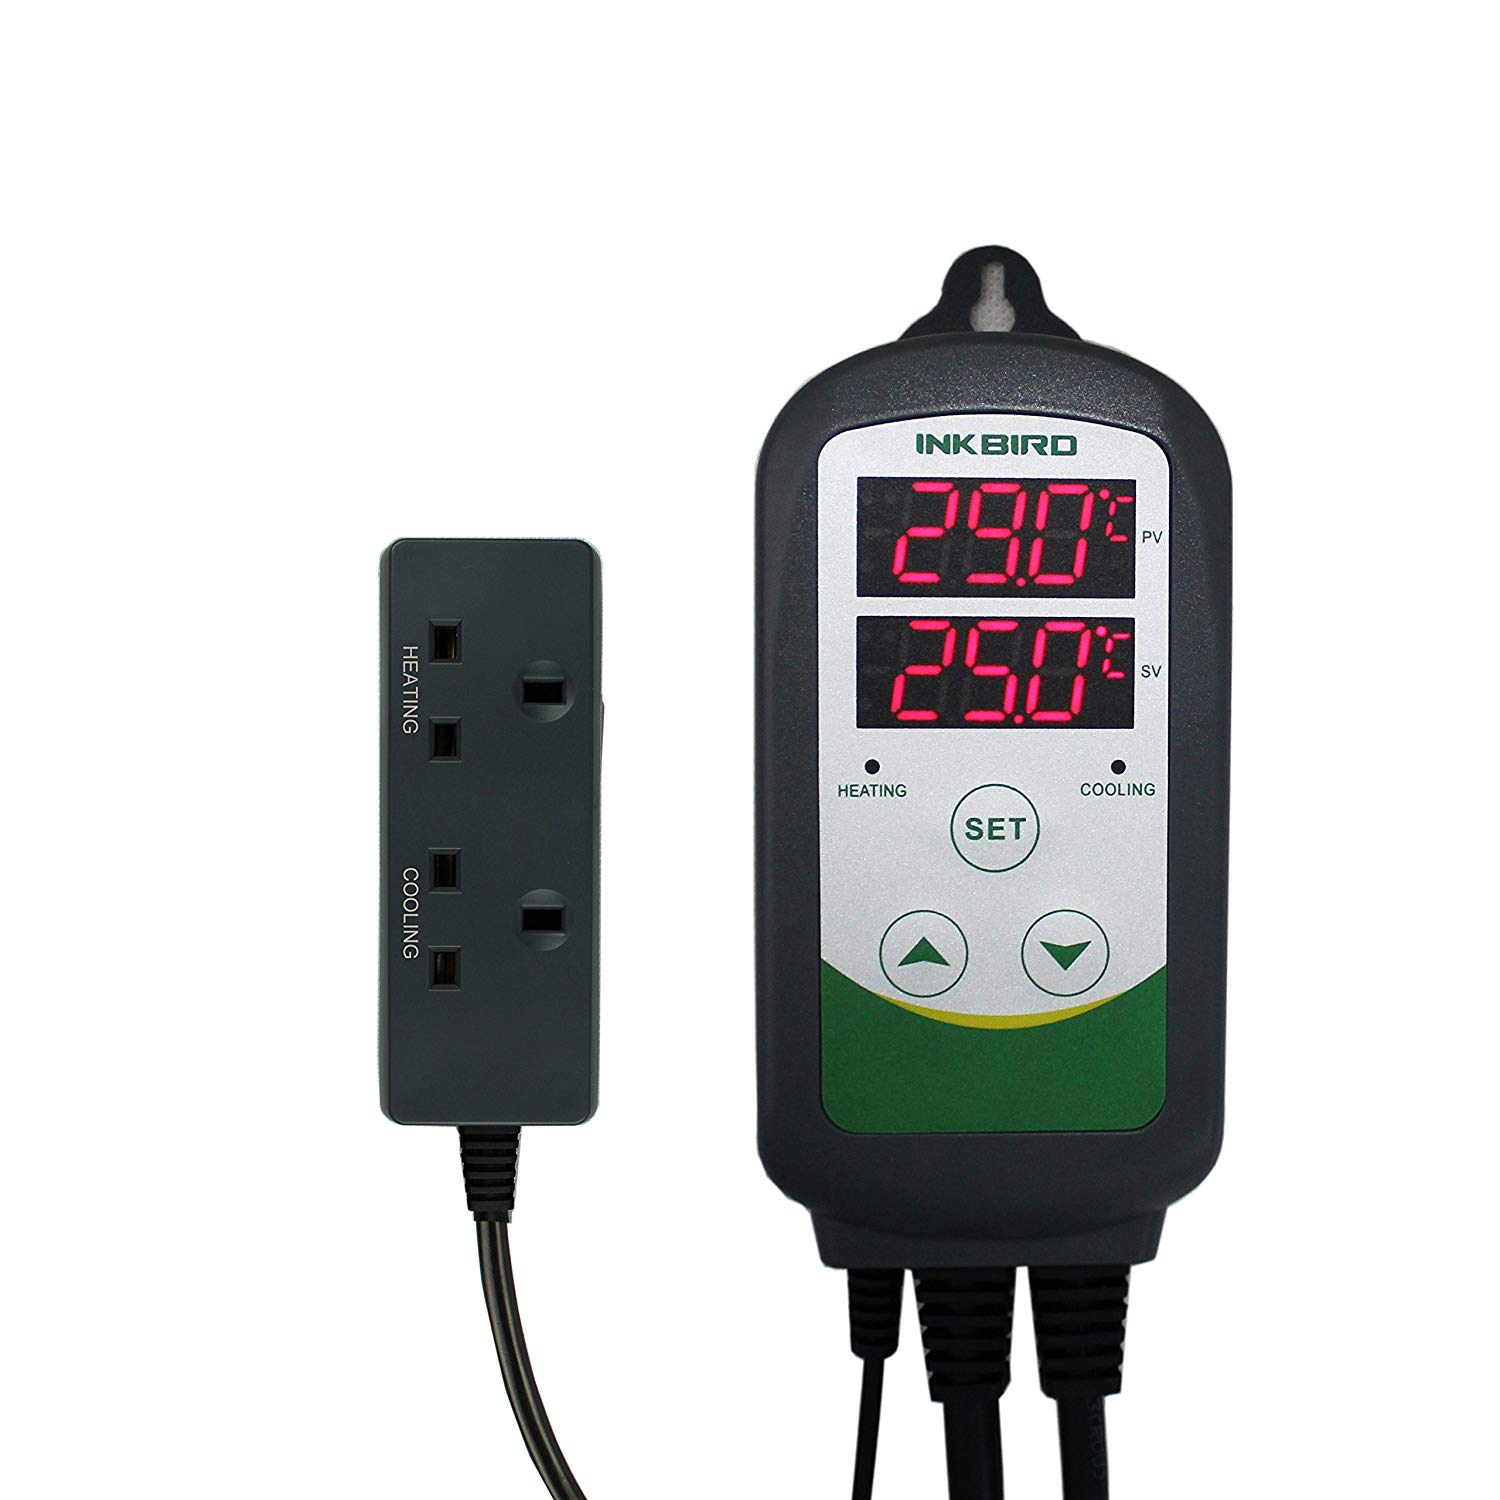 Inkbird ITC-308 Digital Temperature Controller Thermostat Regulator UK Socket